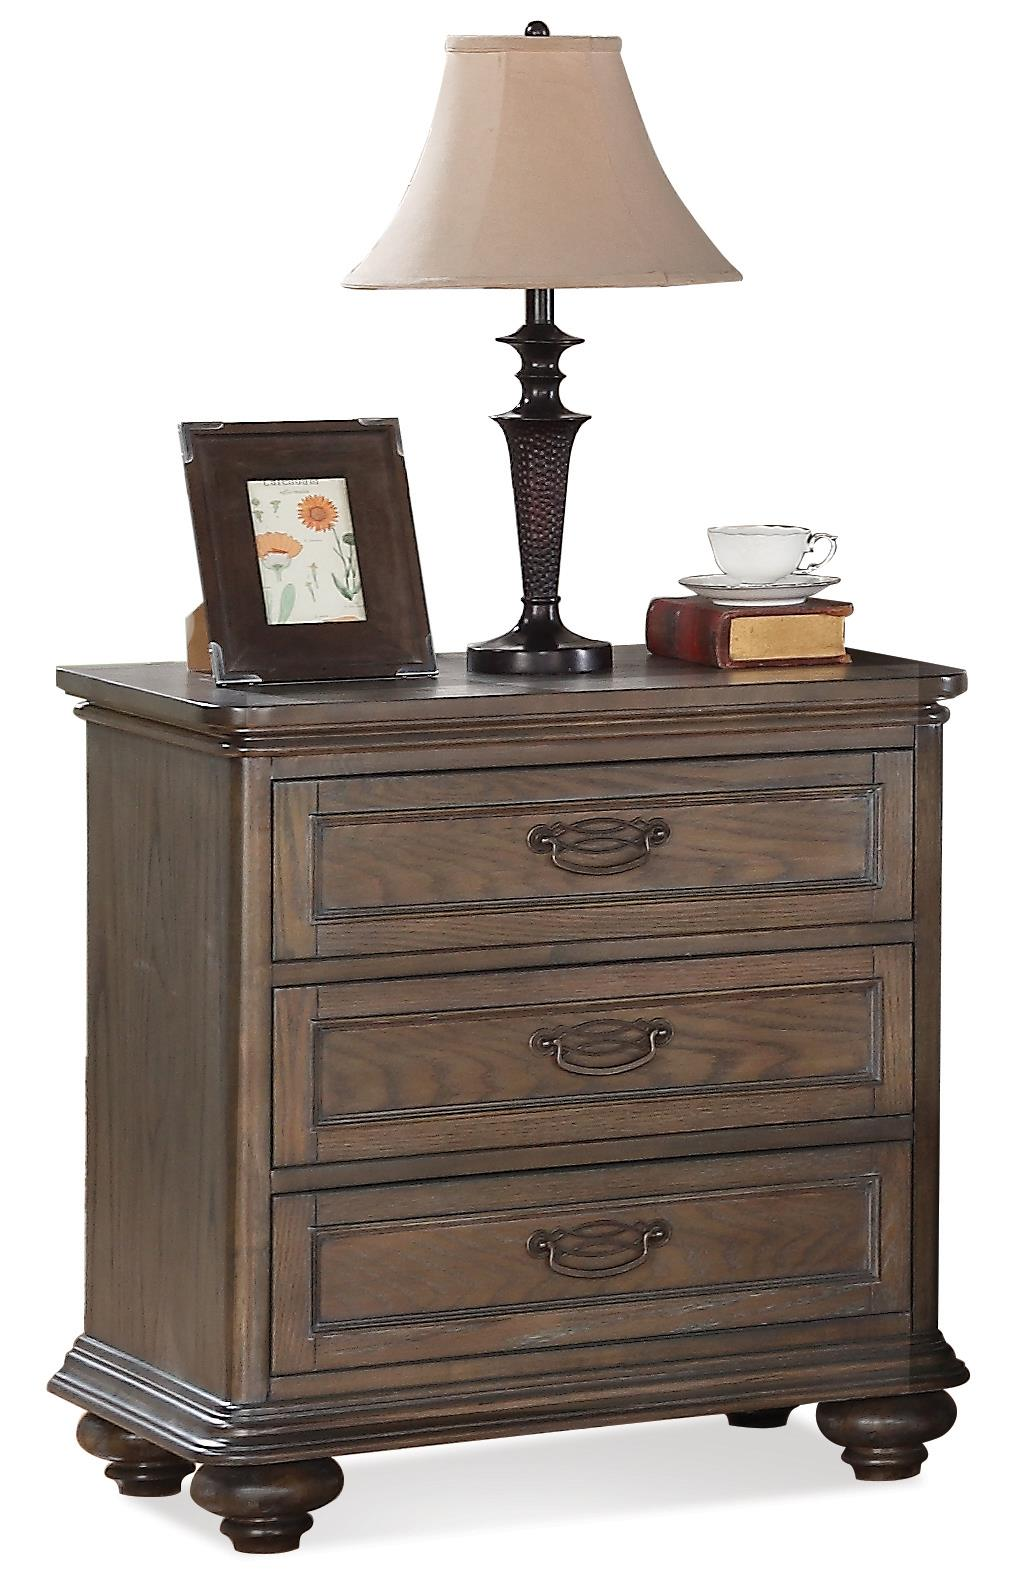 Riverside Furniture Belmeade Three Drawer Nightstand - Item Number: 15868